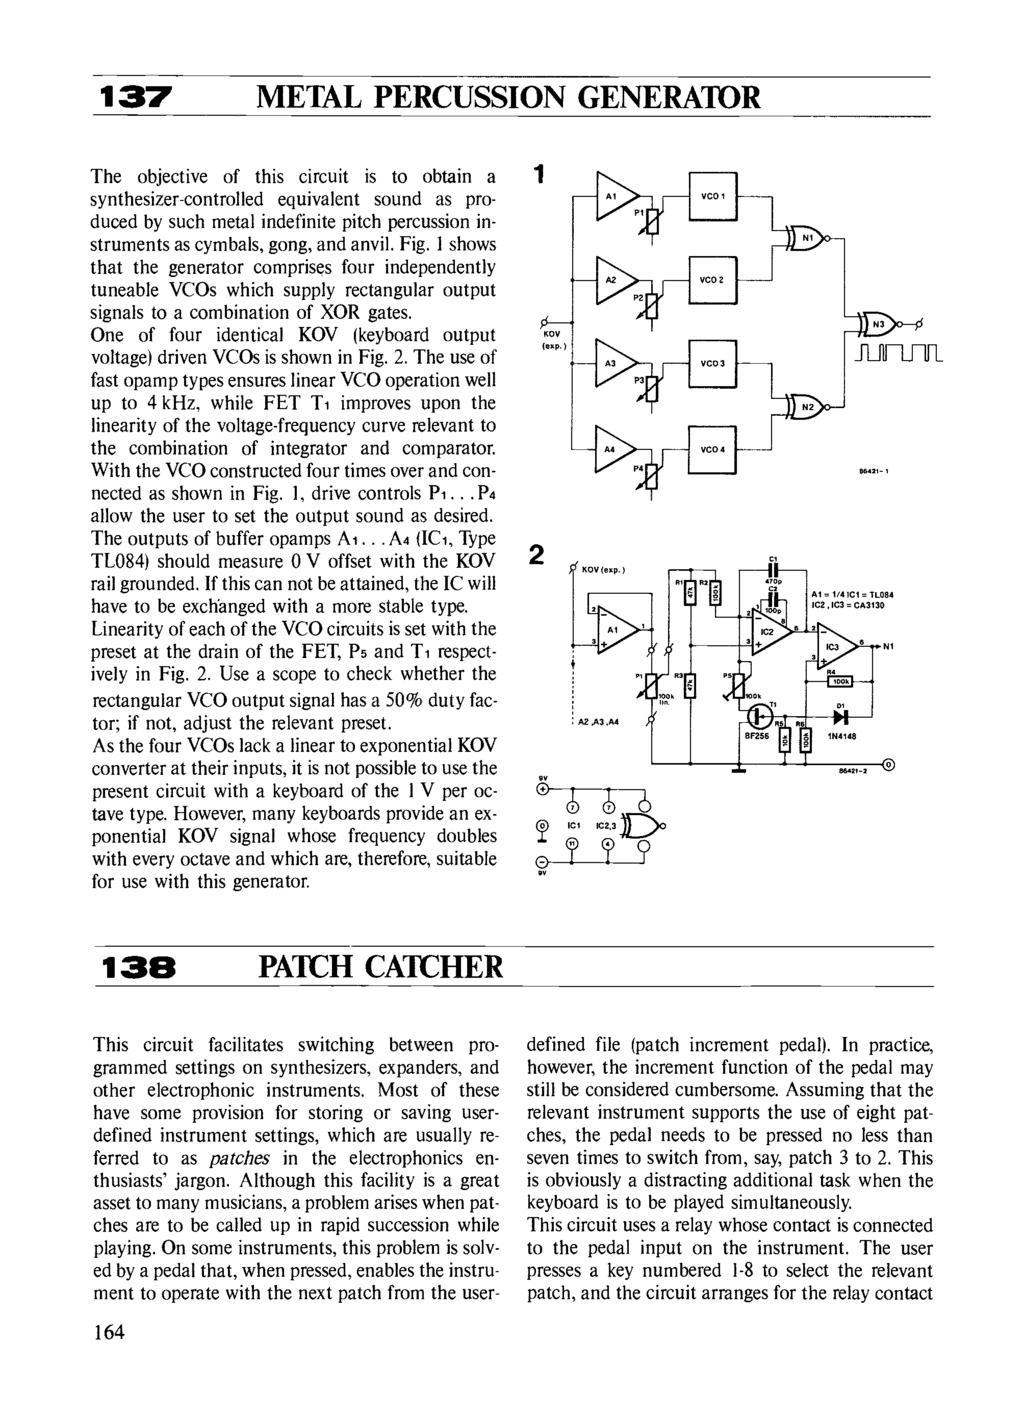 Circuits Elektor Electronics Pdf Threemode Tone Generator Circuit 137 Metal Percussion The Objective Of This Is To Obtain A Synthesizer Controlled